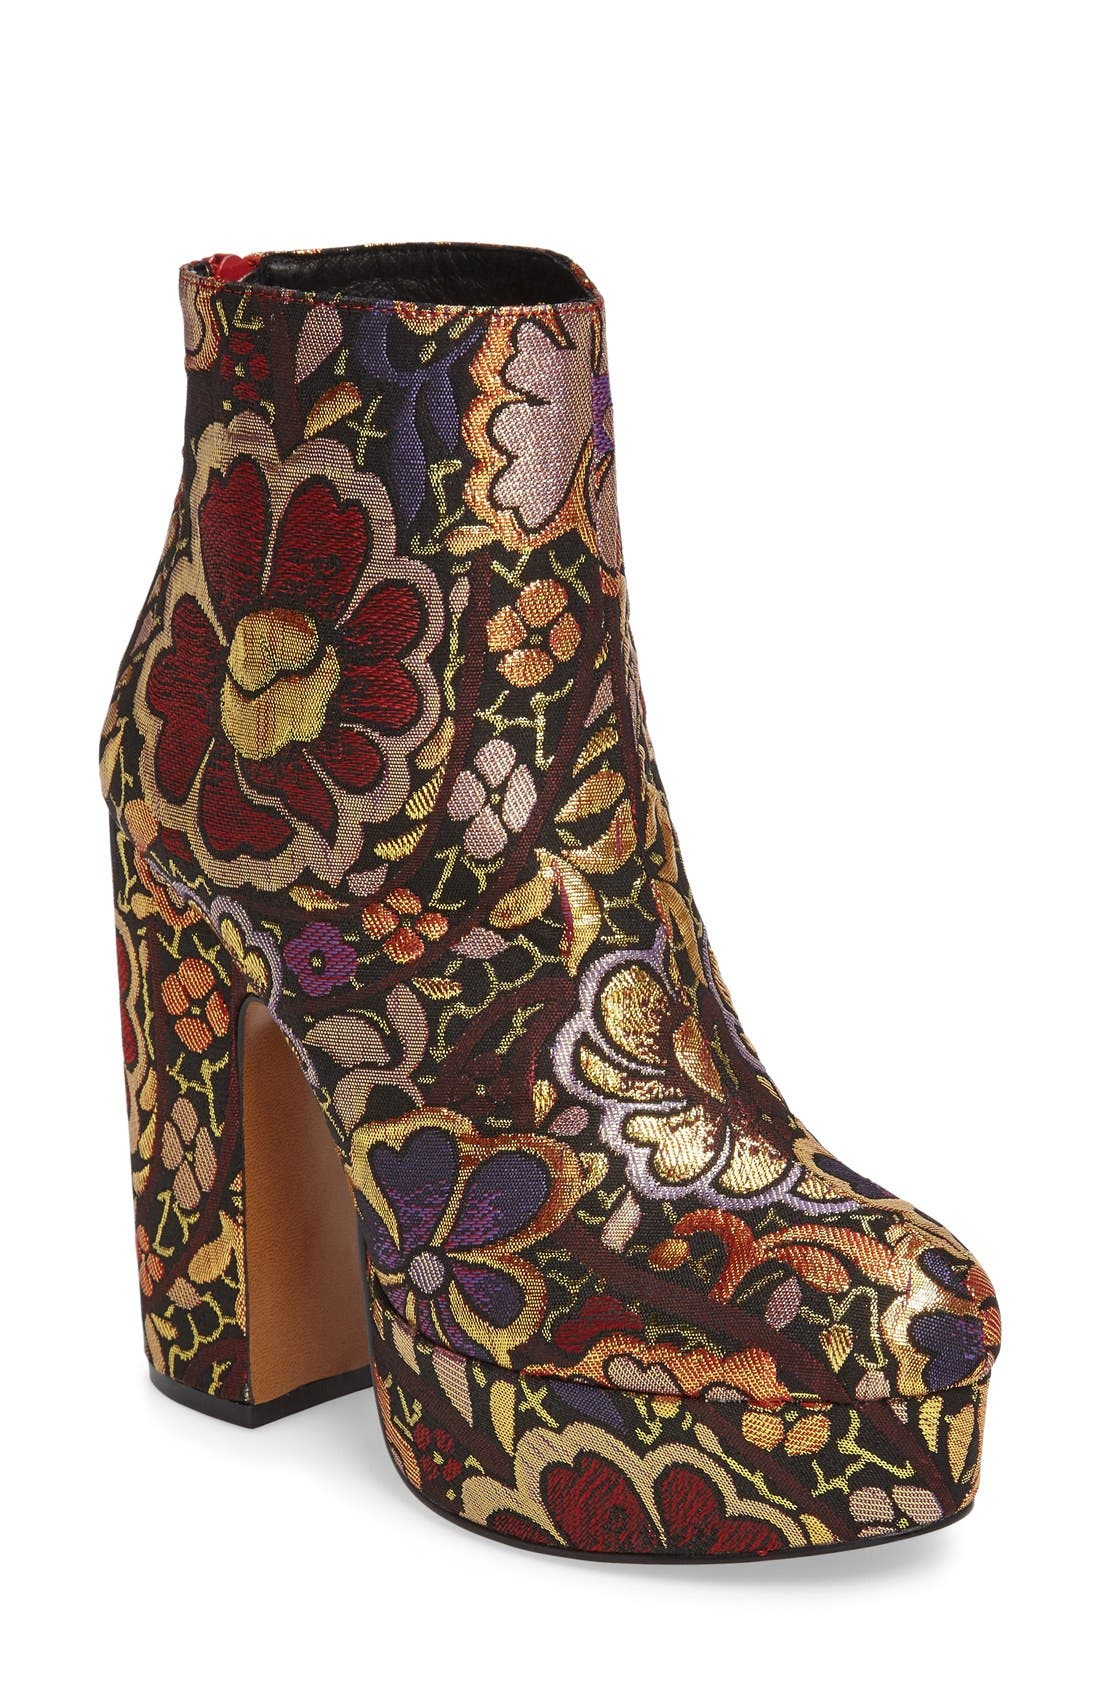 Main Image - Shellys London Chanah Embroidered Platform Bootie (Women)